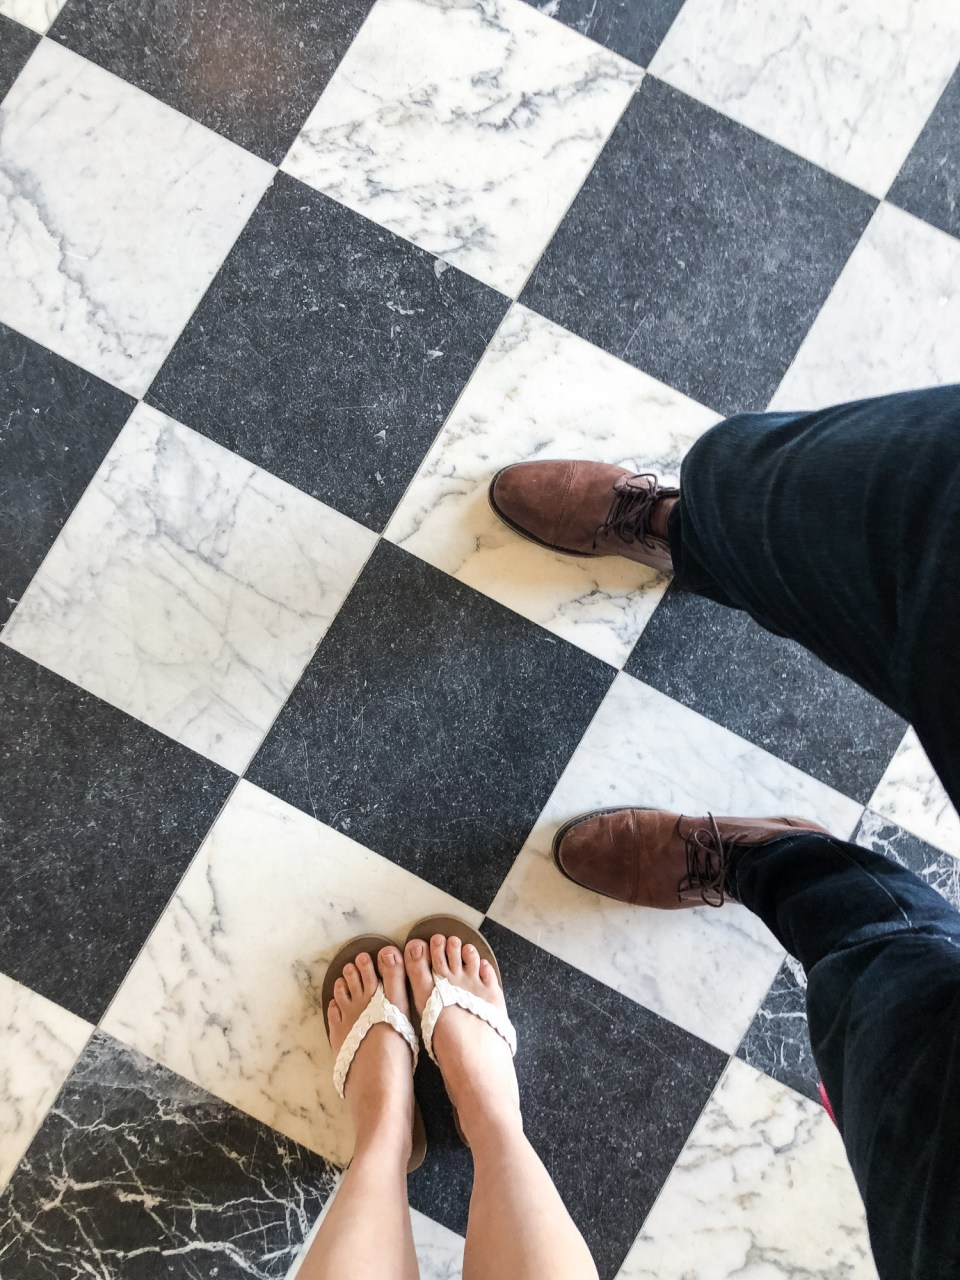 Checkered floors in the Palace of Versailles Paris France